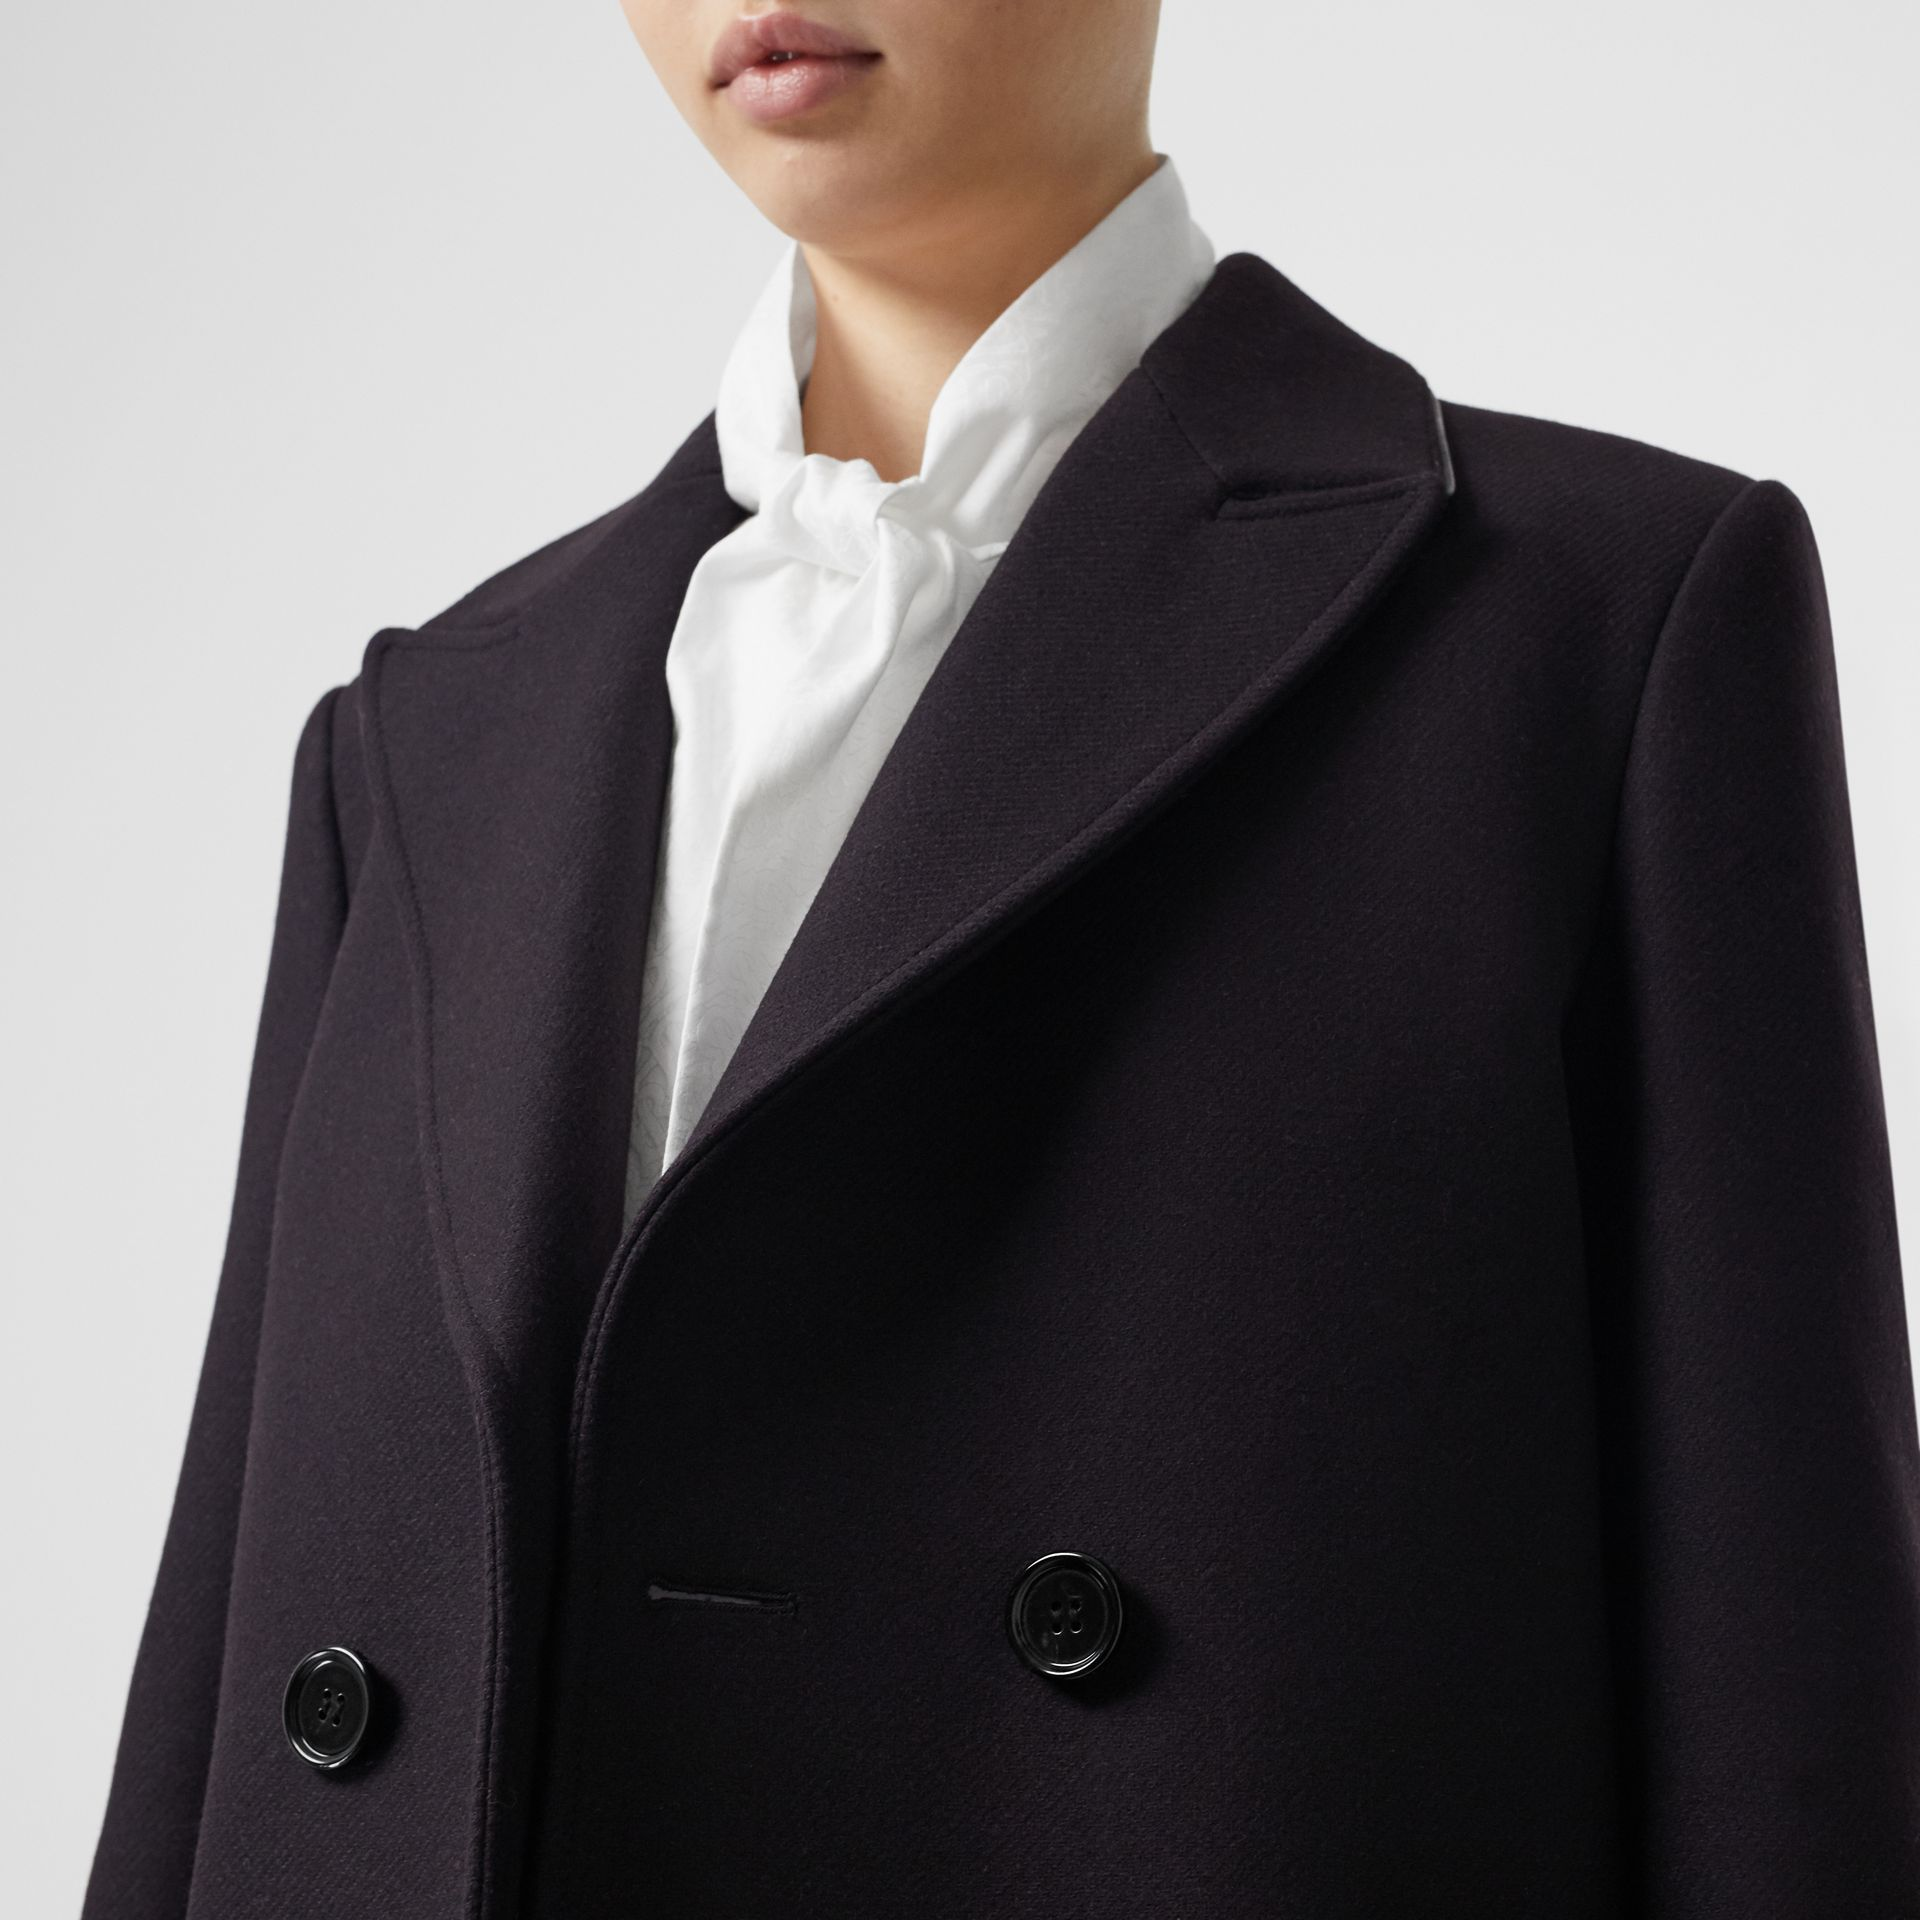 Lambskin Trim Wool Cashmere Blend Tailored Coat in Black Maroon - Women | Burberry United States - gallery image 5